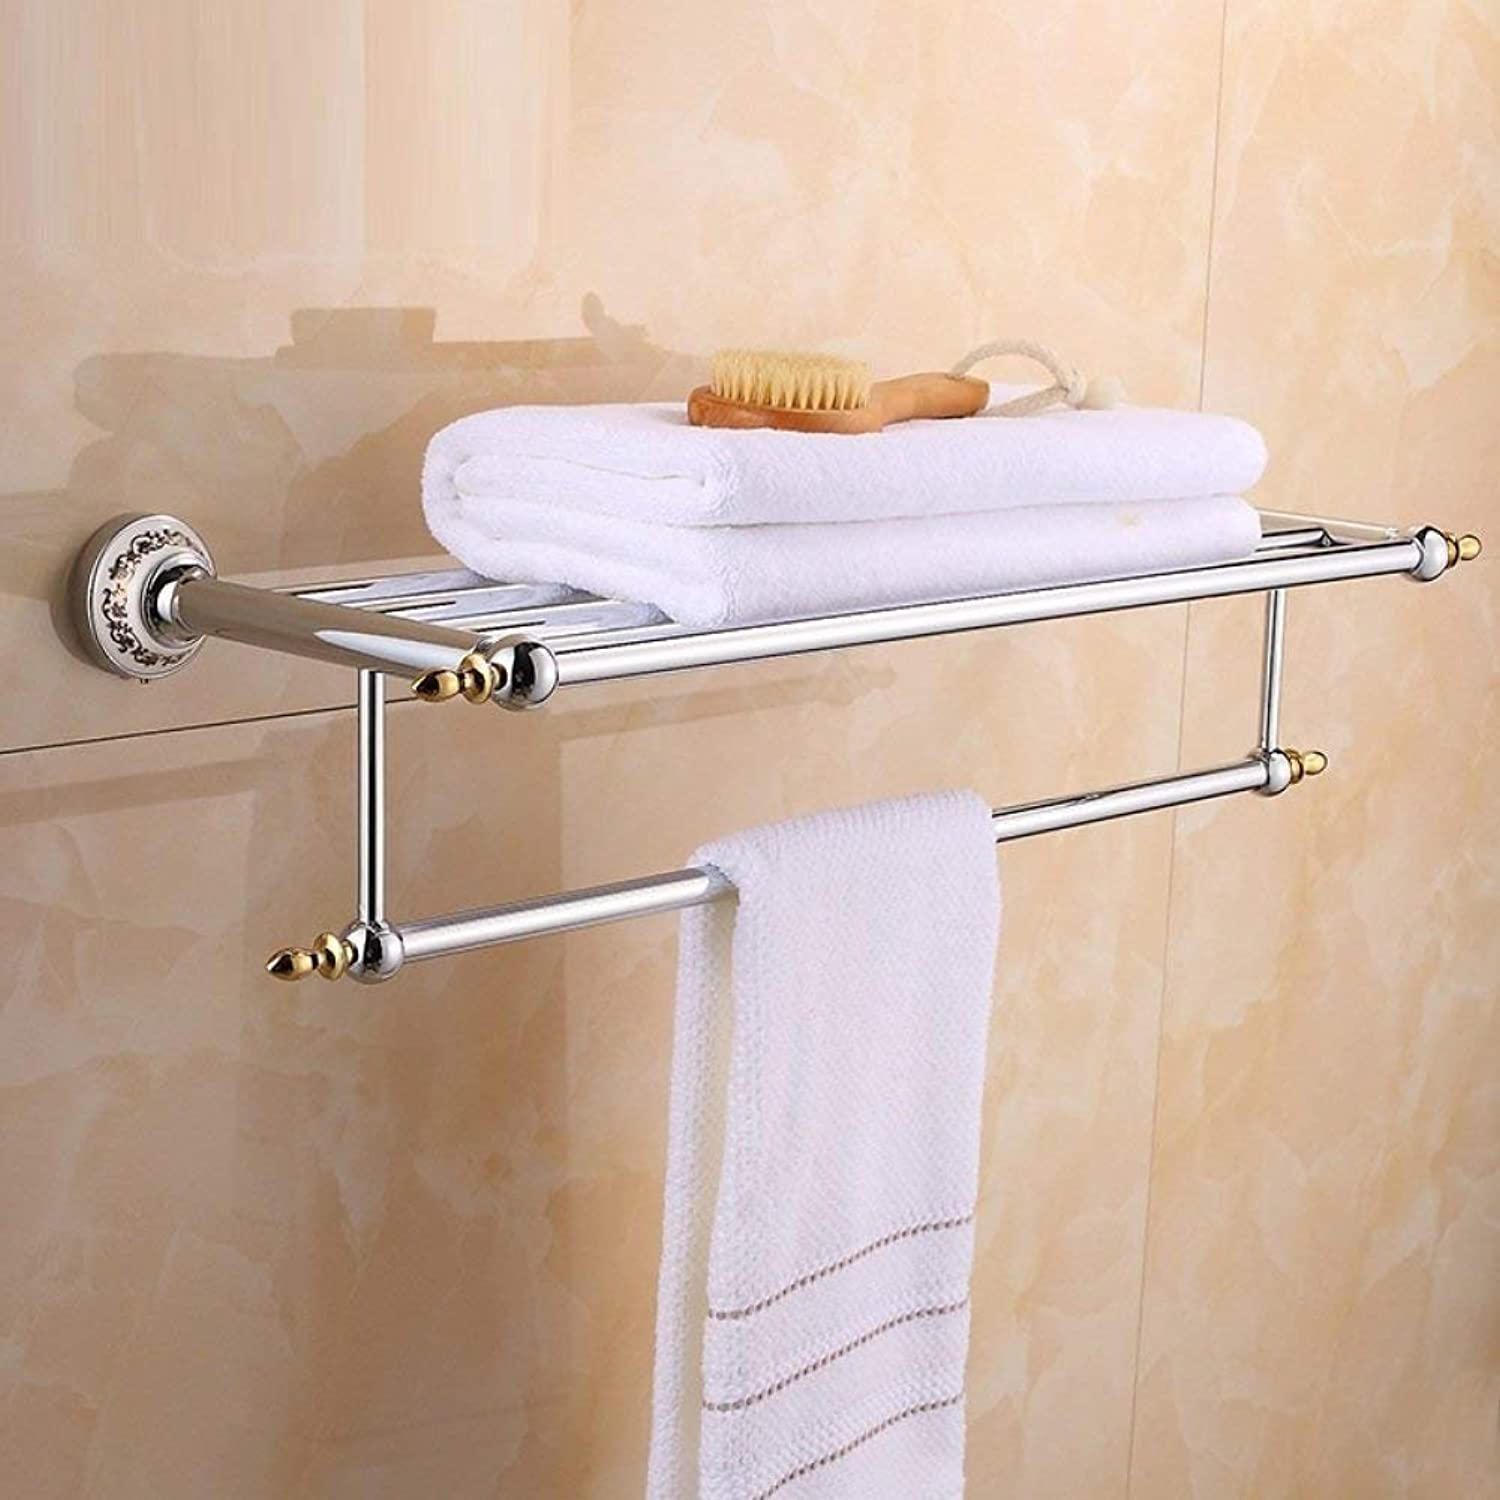 Copper European Retro, Dry-Towels, Shelves, anticorrosion and Home Bathroom Accessories for The Decoration of The Hotel